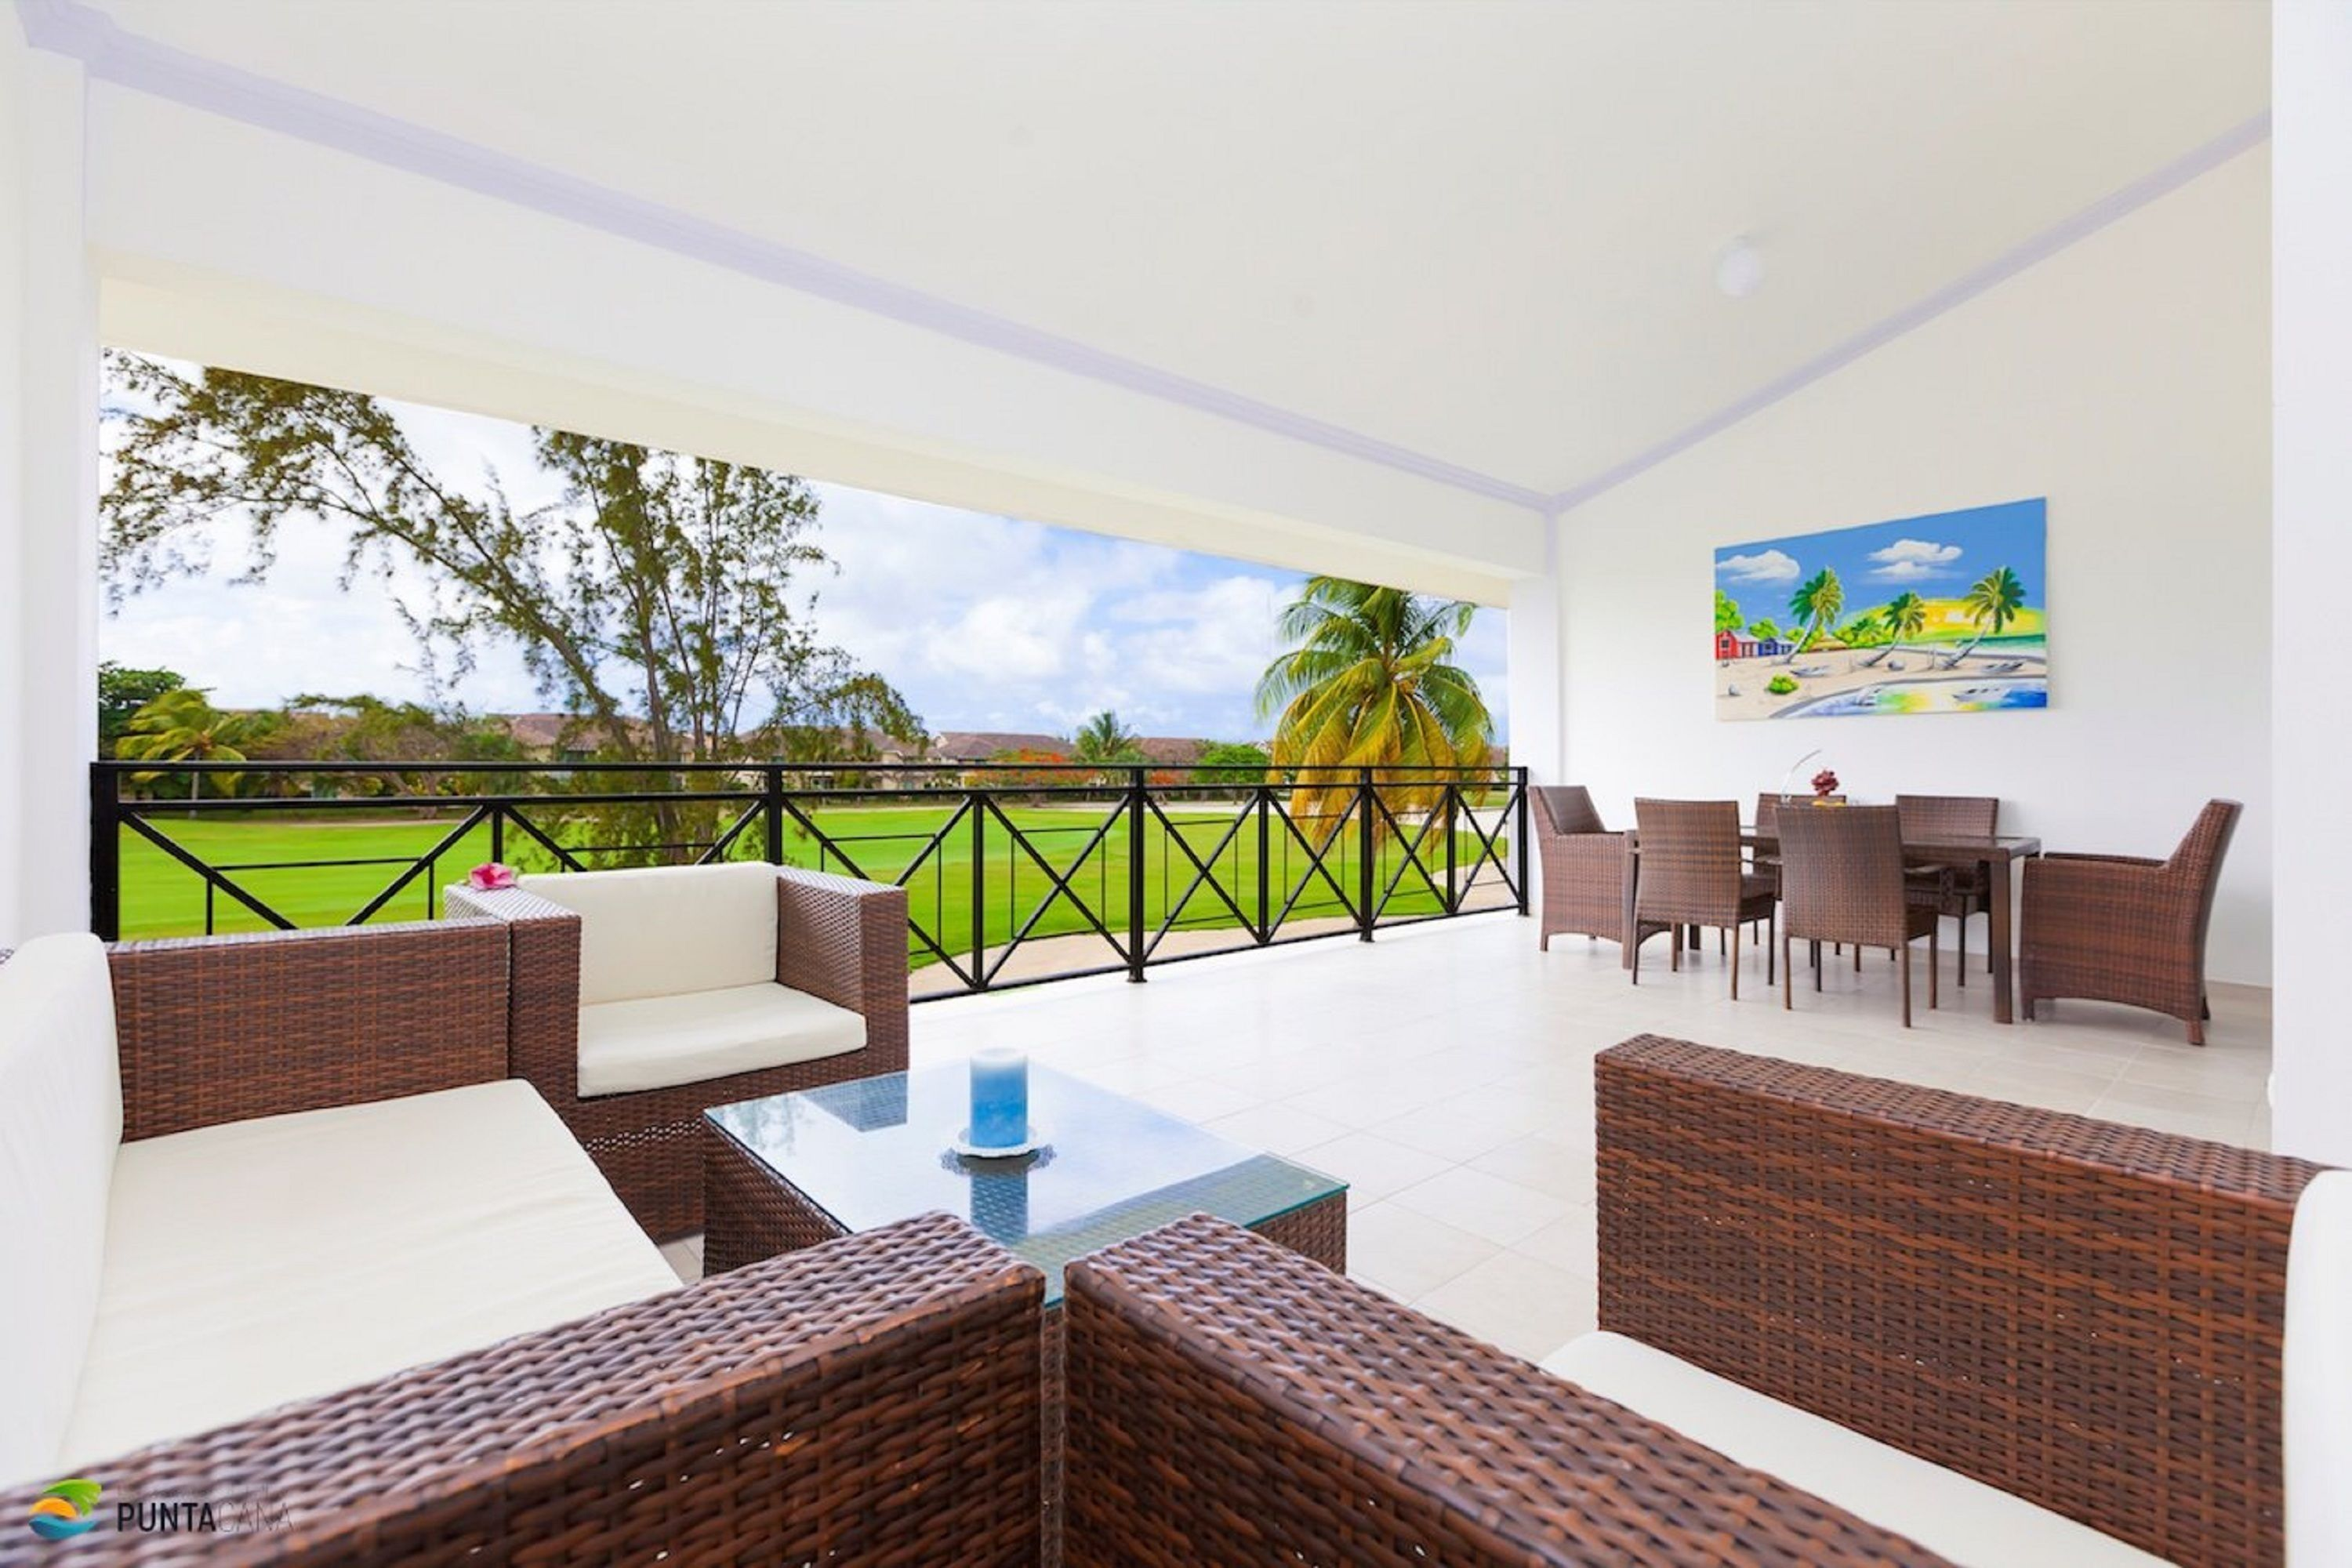 Everything Punta Cana Pools And Golf